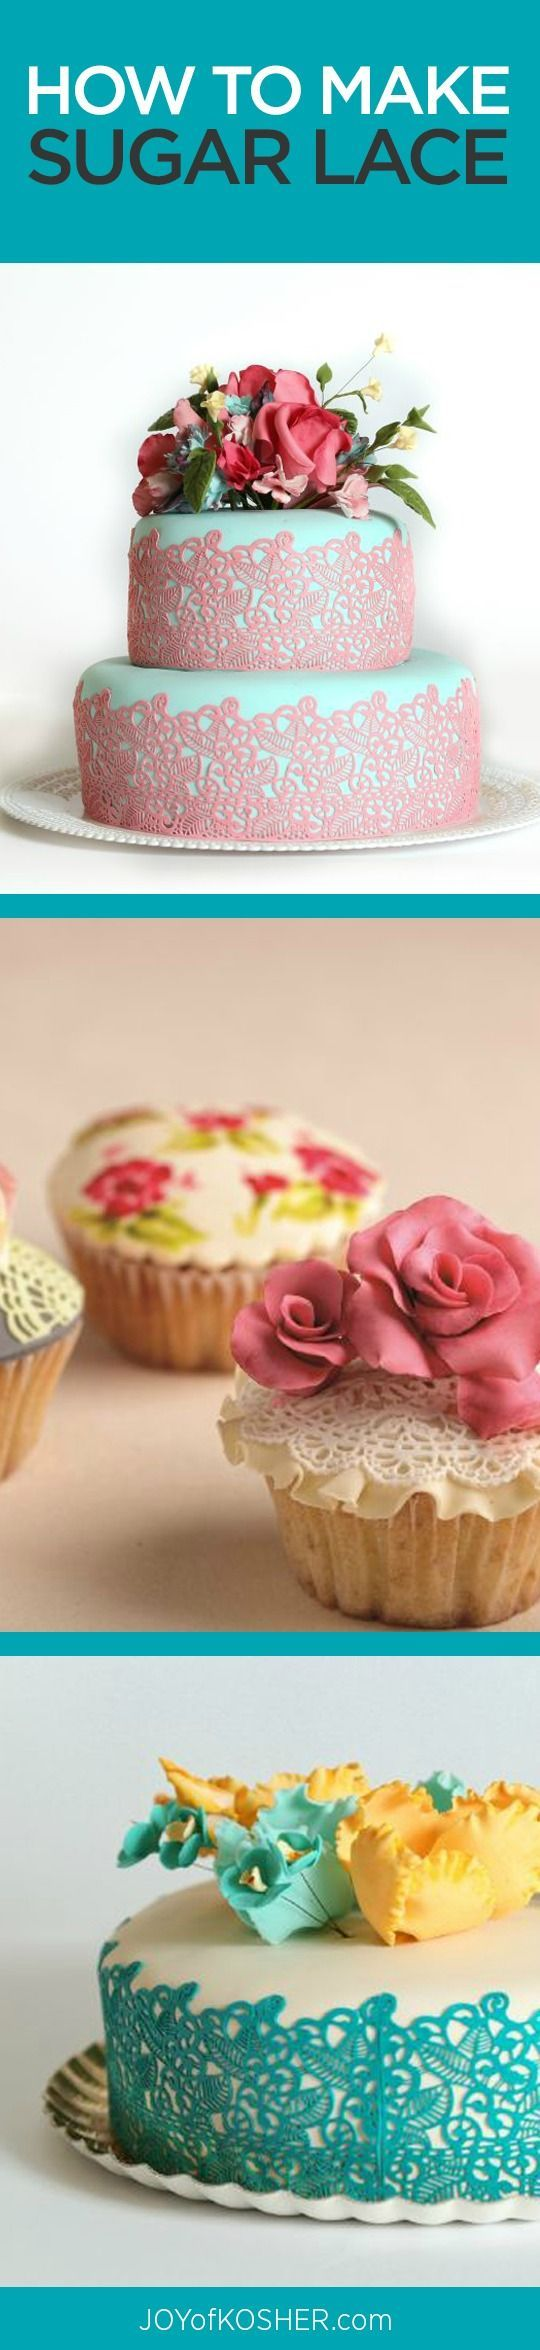 Learn to decorate a cake with sugar lace - tips and tricks here for gorgeous desserts